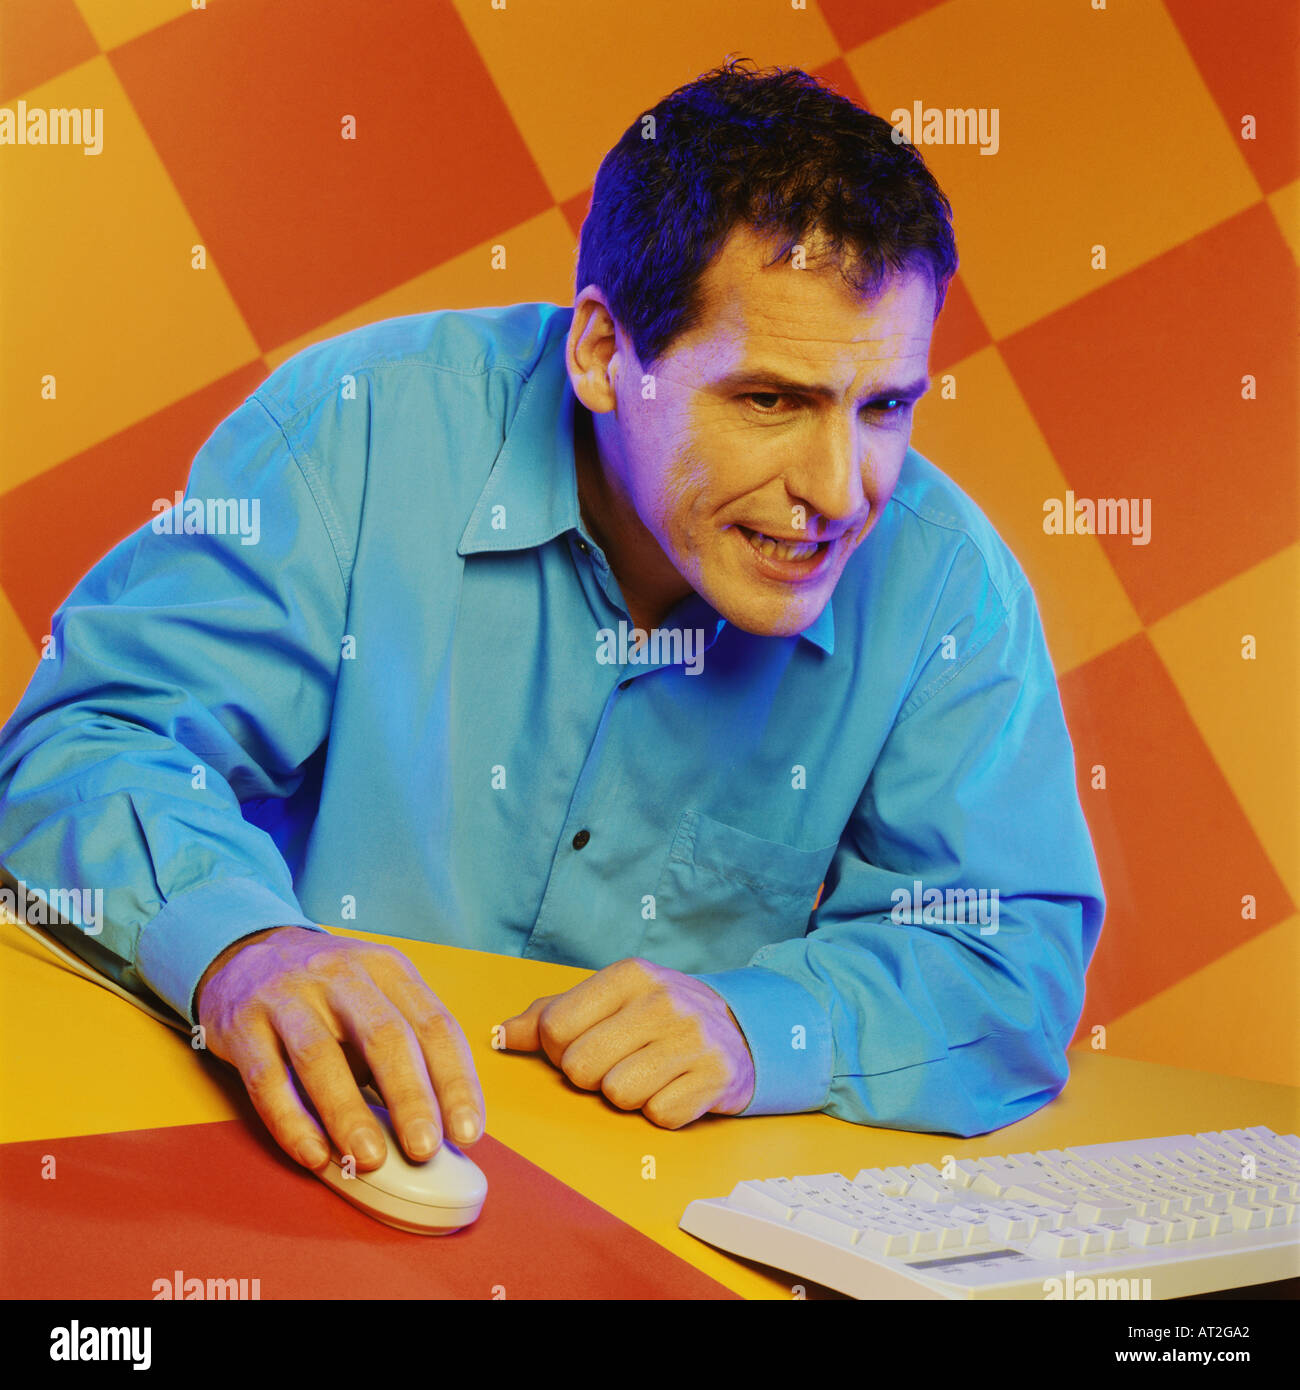 A middle aged man looking at a computer screen - Stock Image